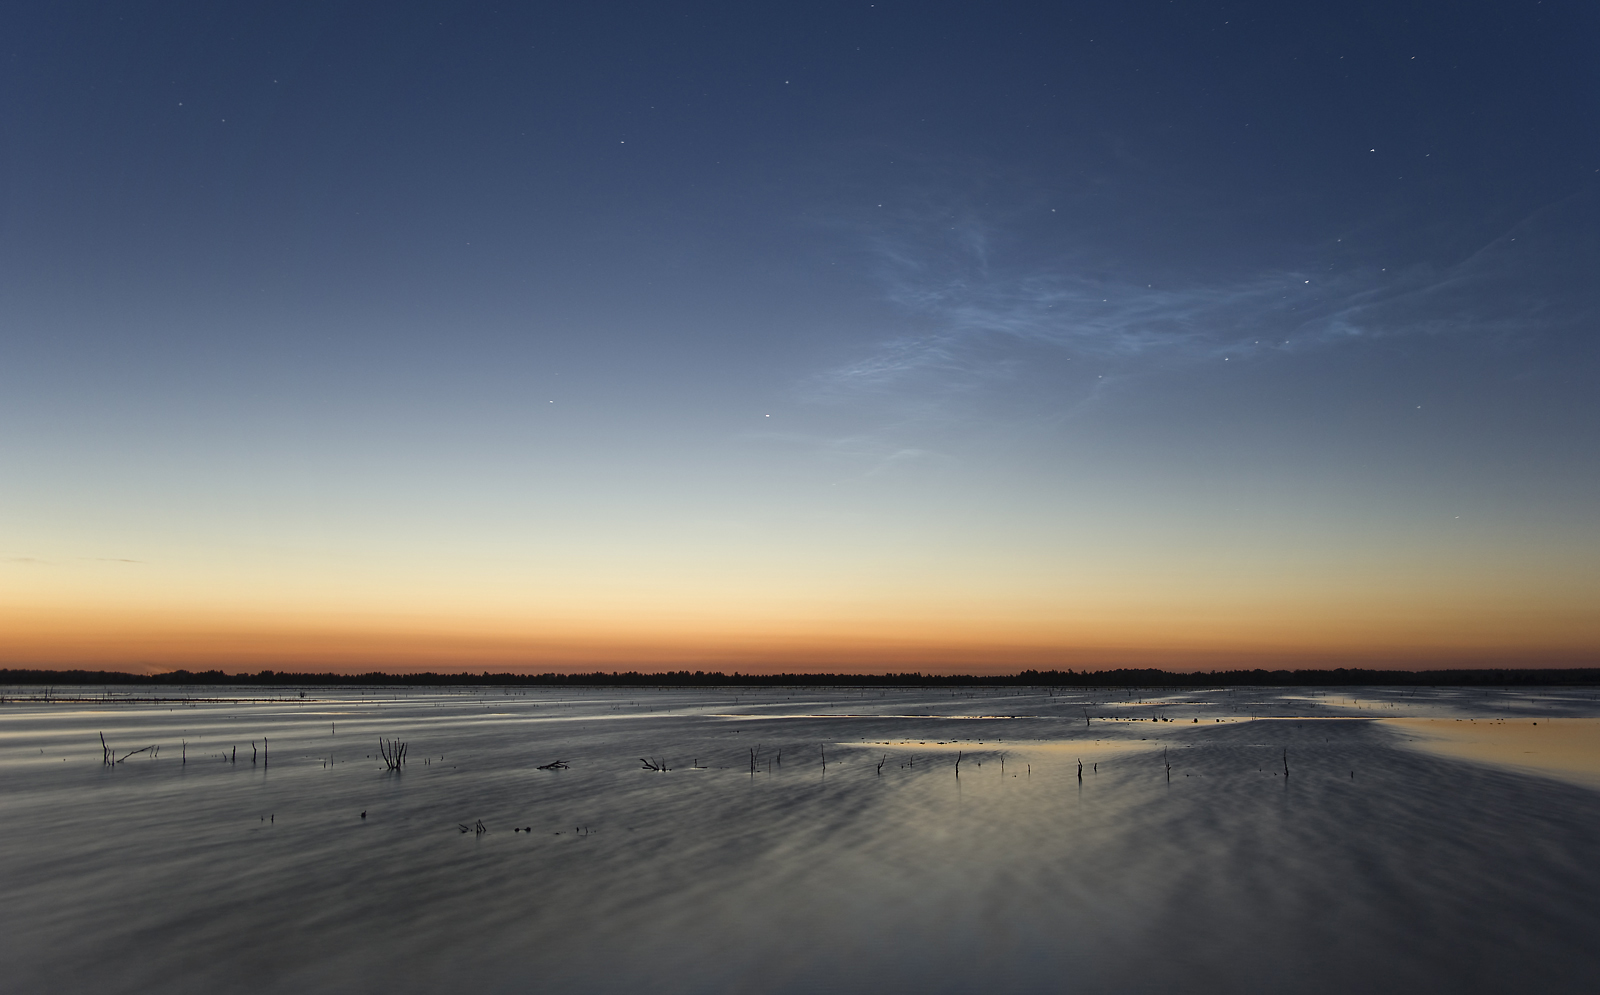 http://upload.wikimedia.org/wikipedia/commons/c/c8/Noctilucent_clouds_netherlands.jpg